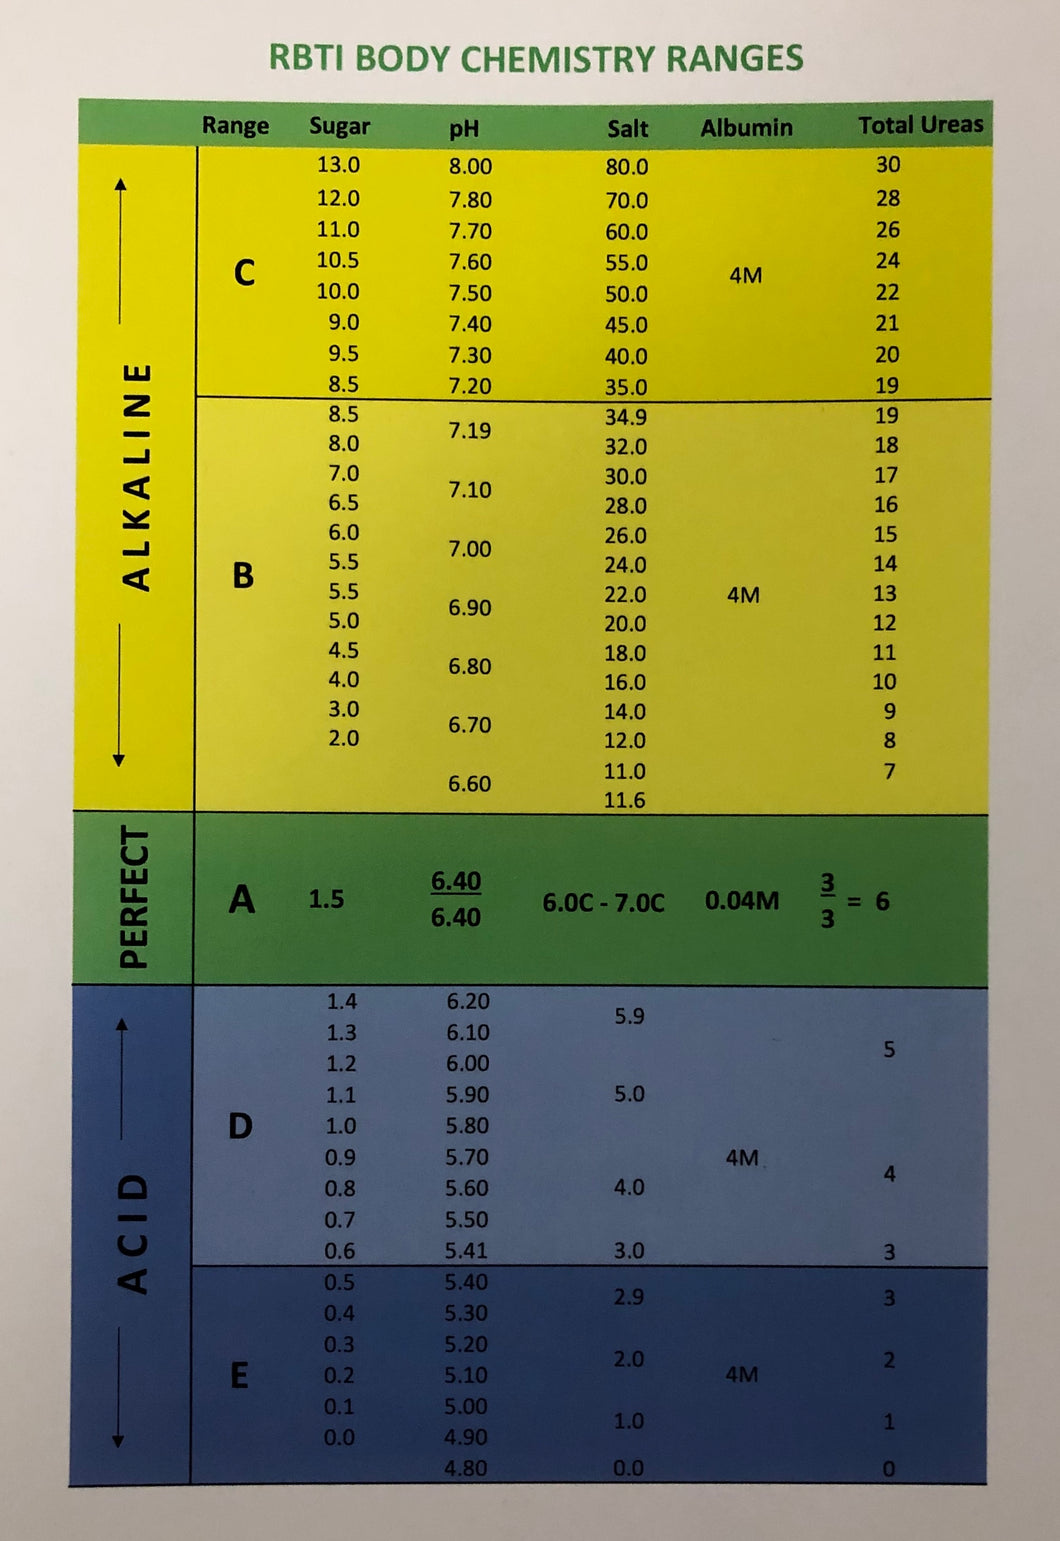 RBTI Body Chemistry Ranges